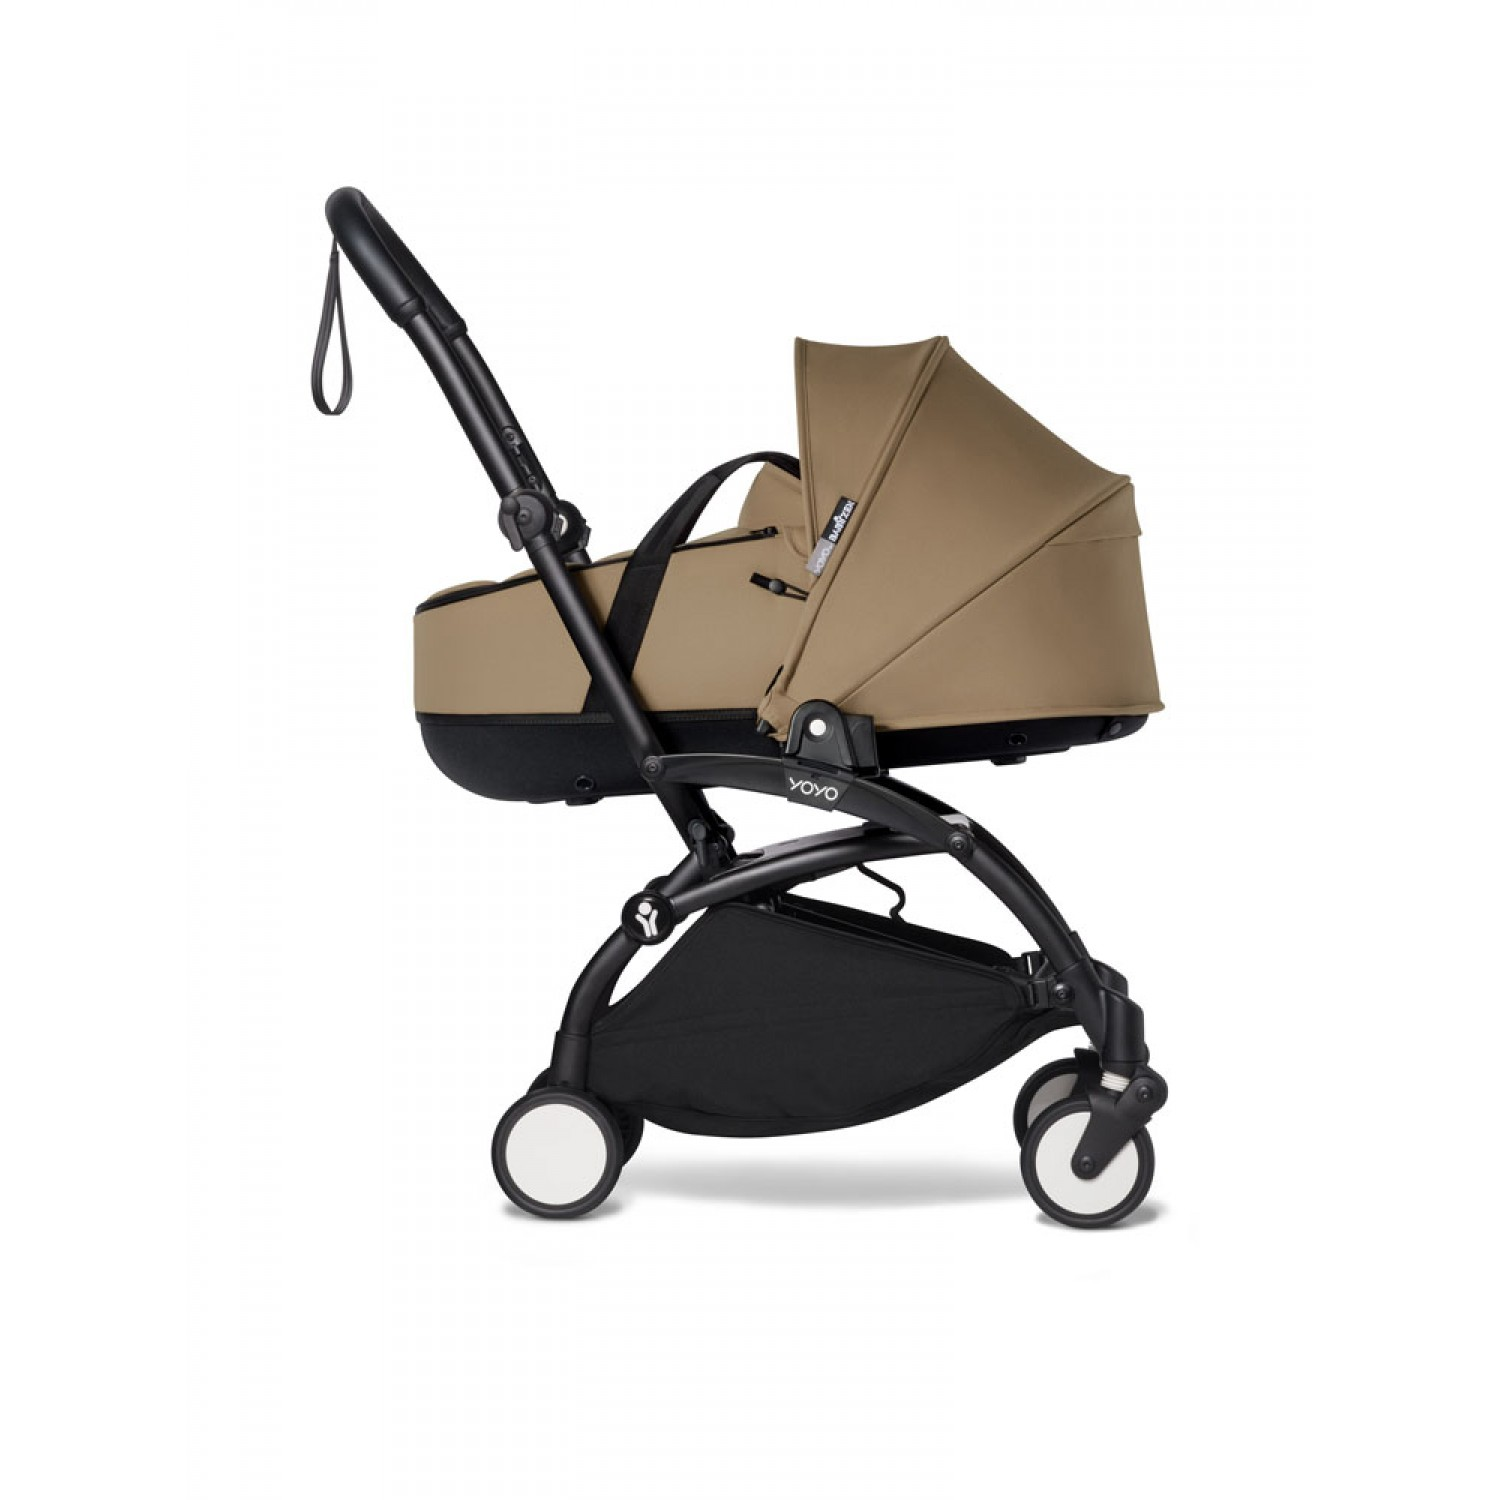 Complete BABYZEN stroller YOYO2 bassinet and 6+ Black Frame | Toffee